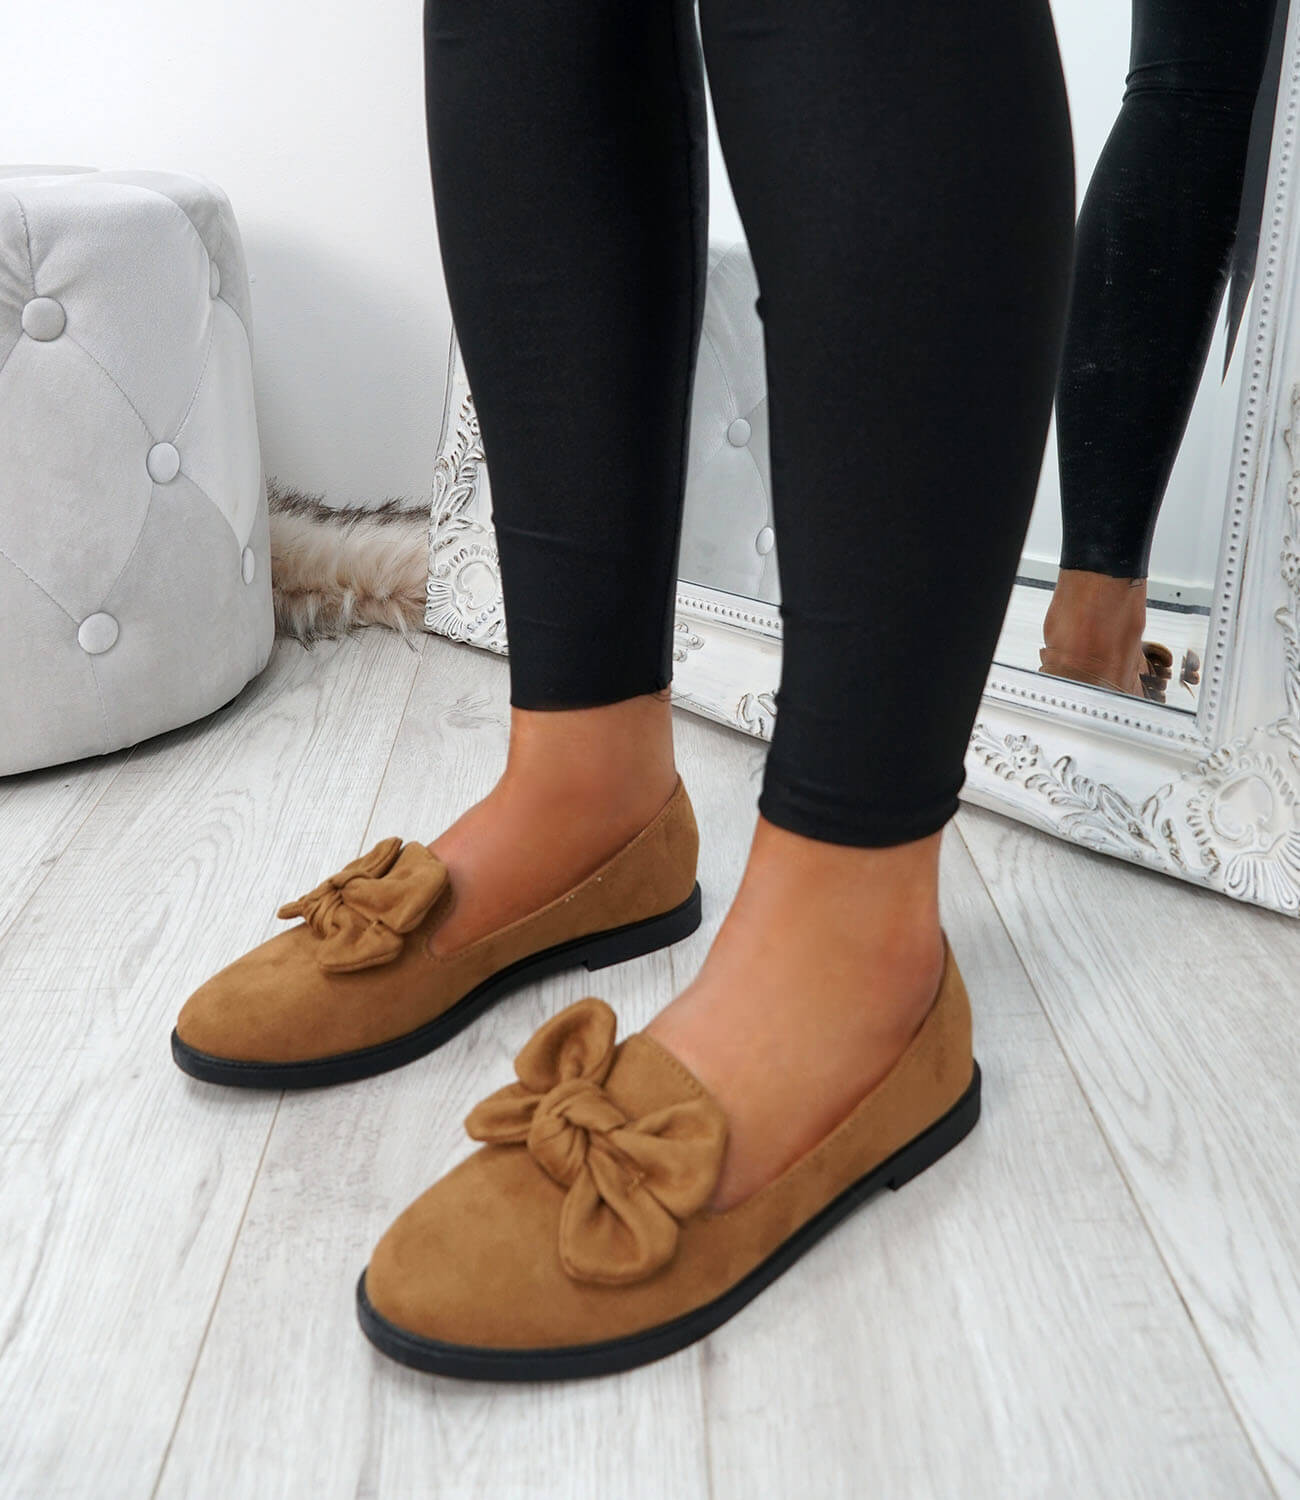 WOMENS-LADIES-BOW-BALLERINA-PUMPS-FLATS-SLIP-ON-BALLET-CASUAL-WORK-SHOES-SIZE thumbnail 19